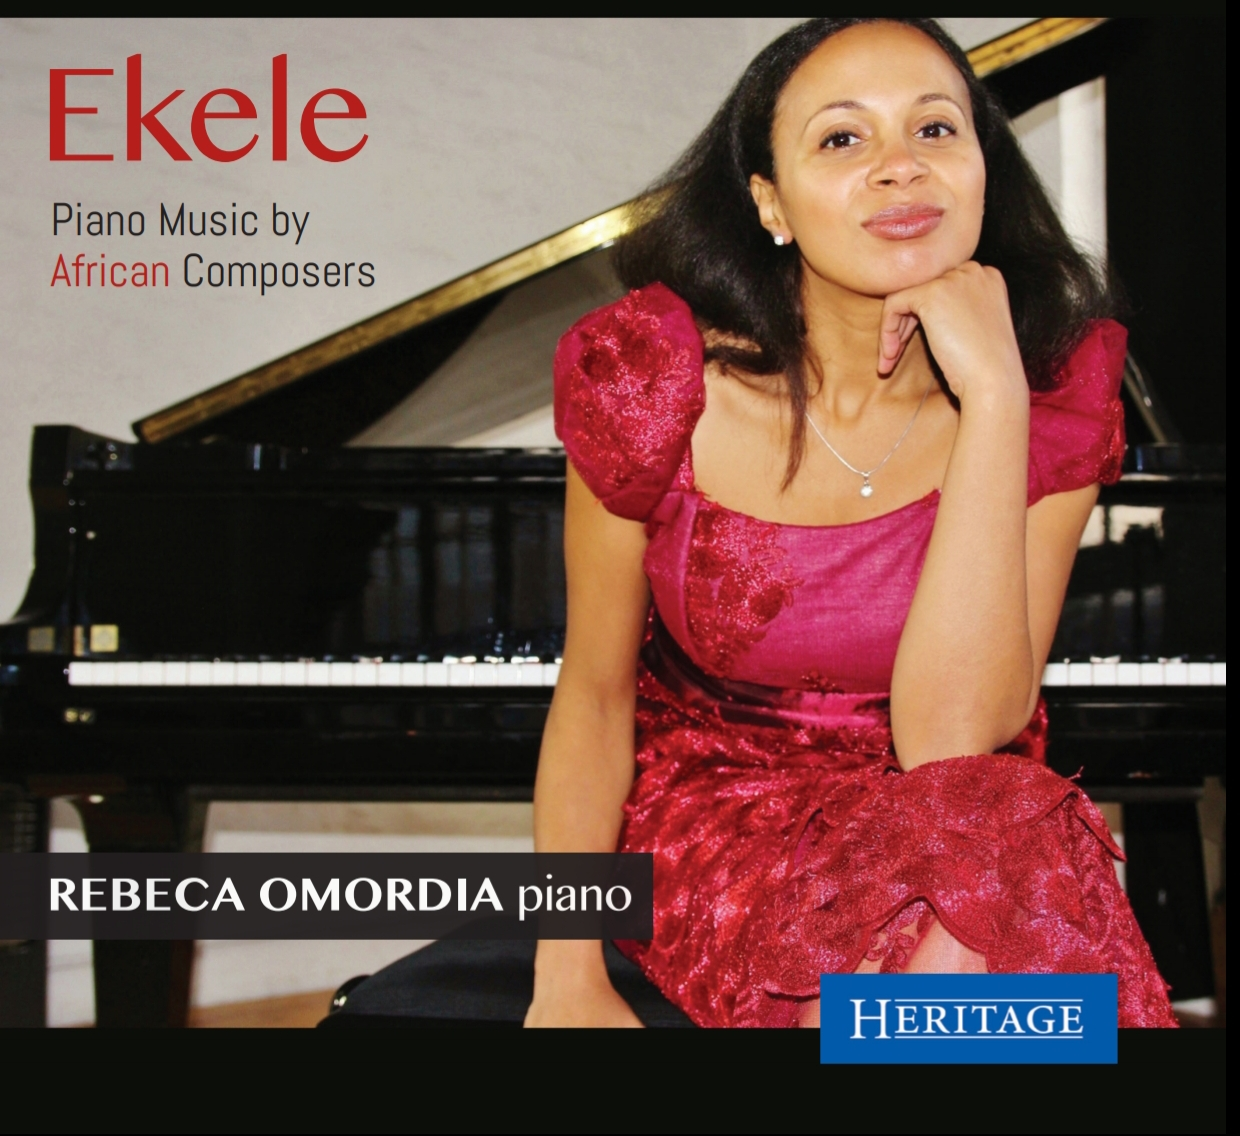 Ekele Piano Music by African Composers OUT NOW! - Rebeca Omordia, explores the music of her Nigerian heritage on her new CD 'Ekele, Piano Music by African Composers', featuring music of a number of composers from Nigeria, both living and recent, whose music has remained largely unknown in the West. This collection showcases the works of Ayo Bankole, Fred Onovwerosuoke and Christian Onyeji, and is designed to bring this music to a wider audience.